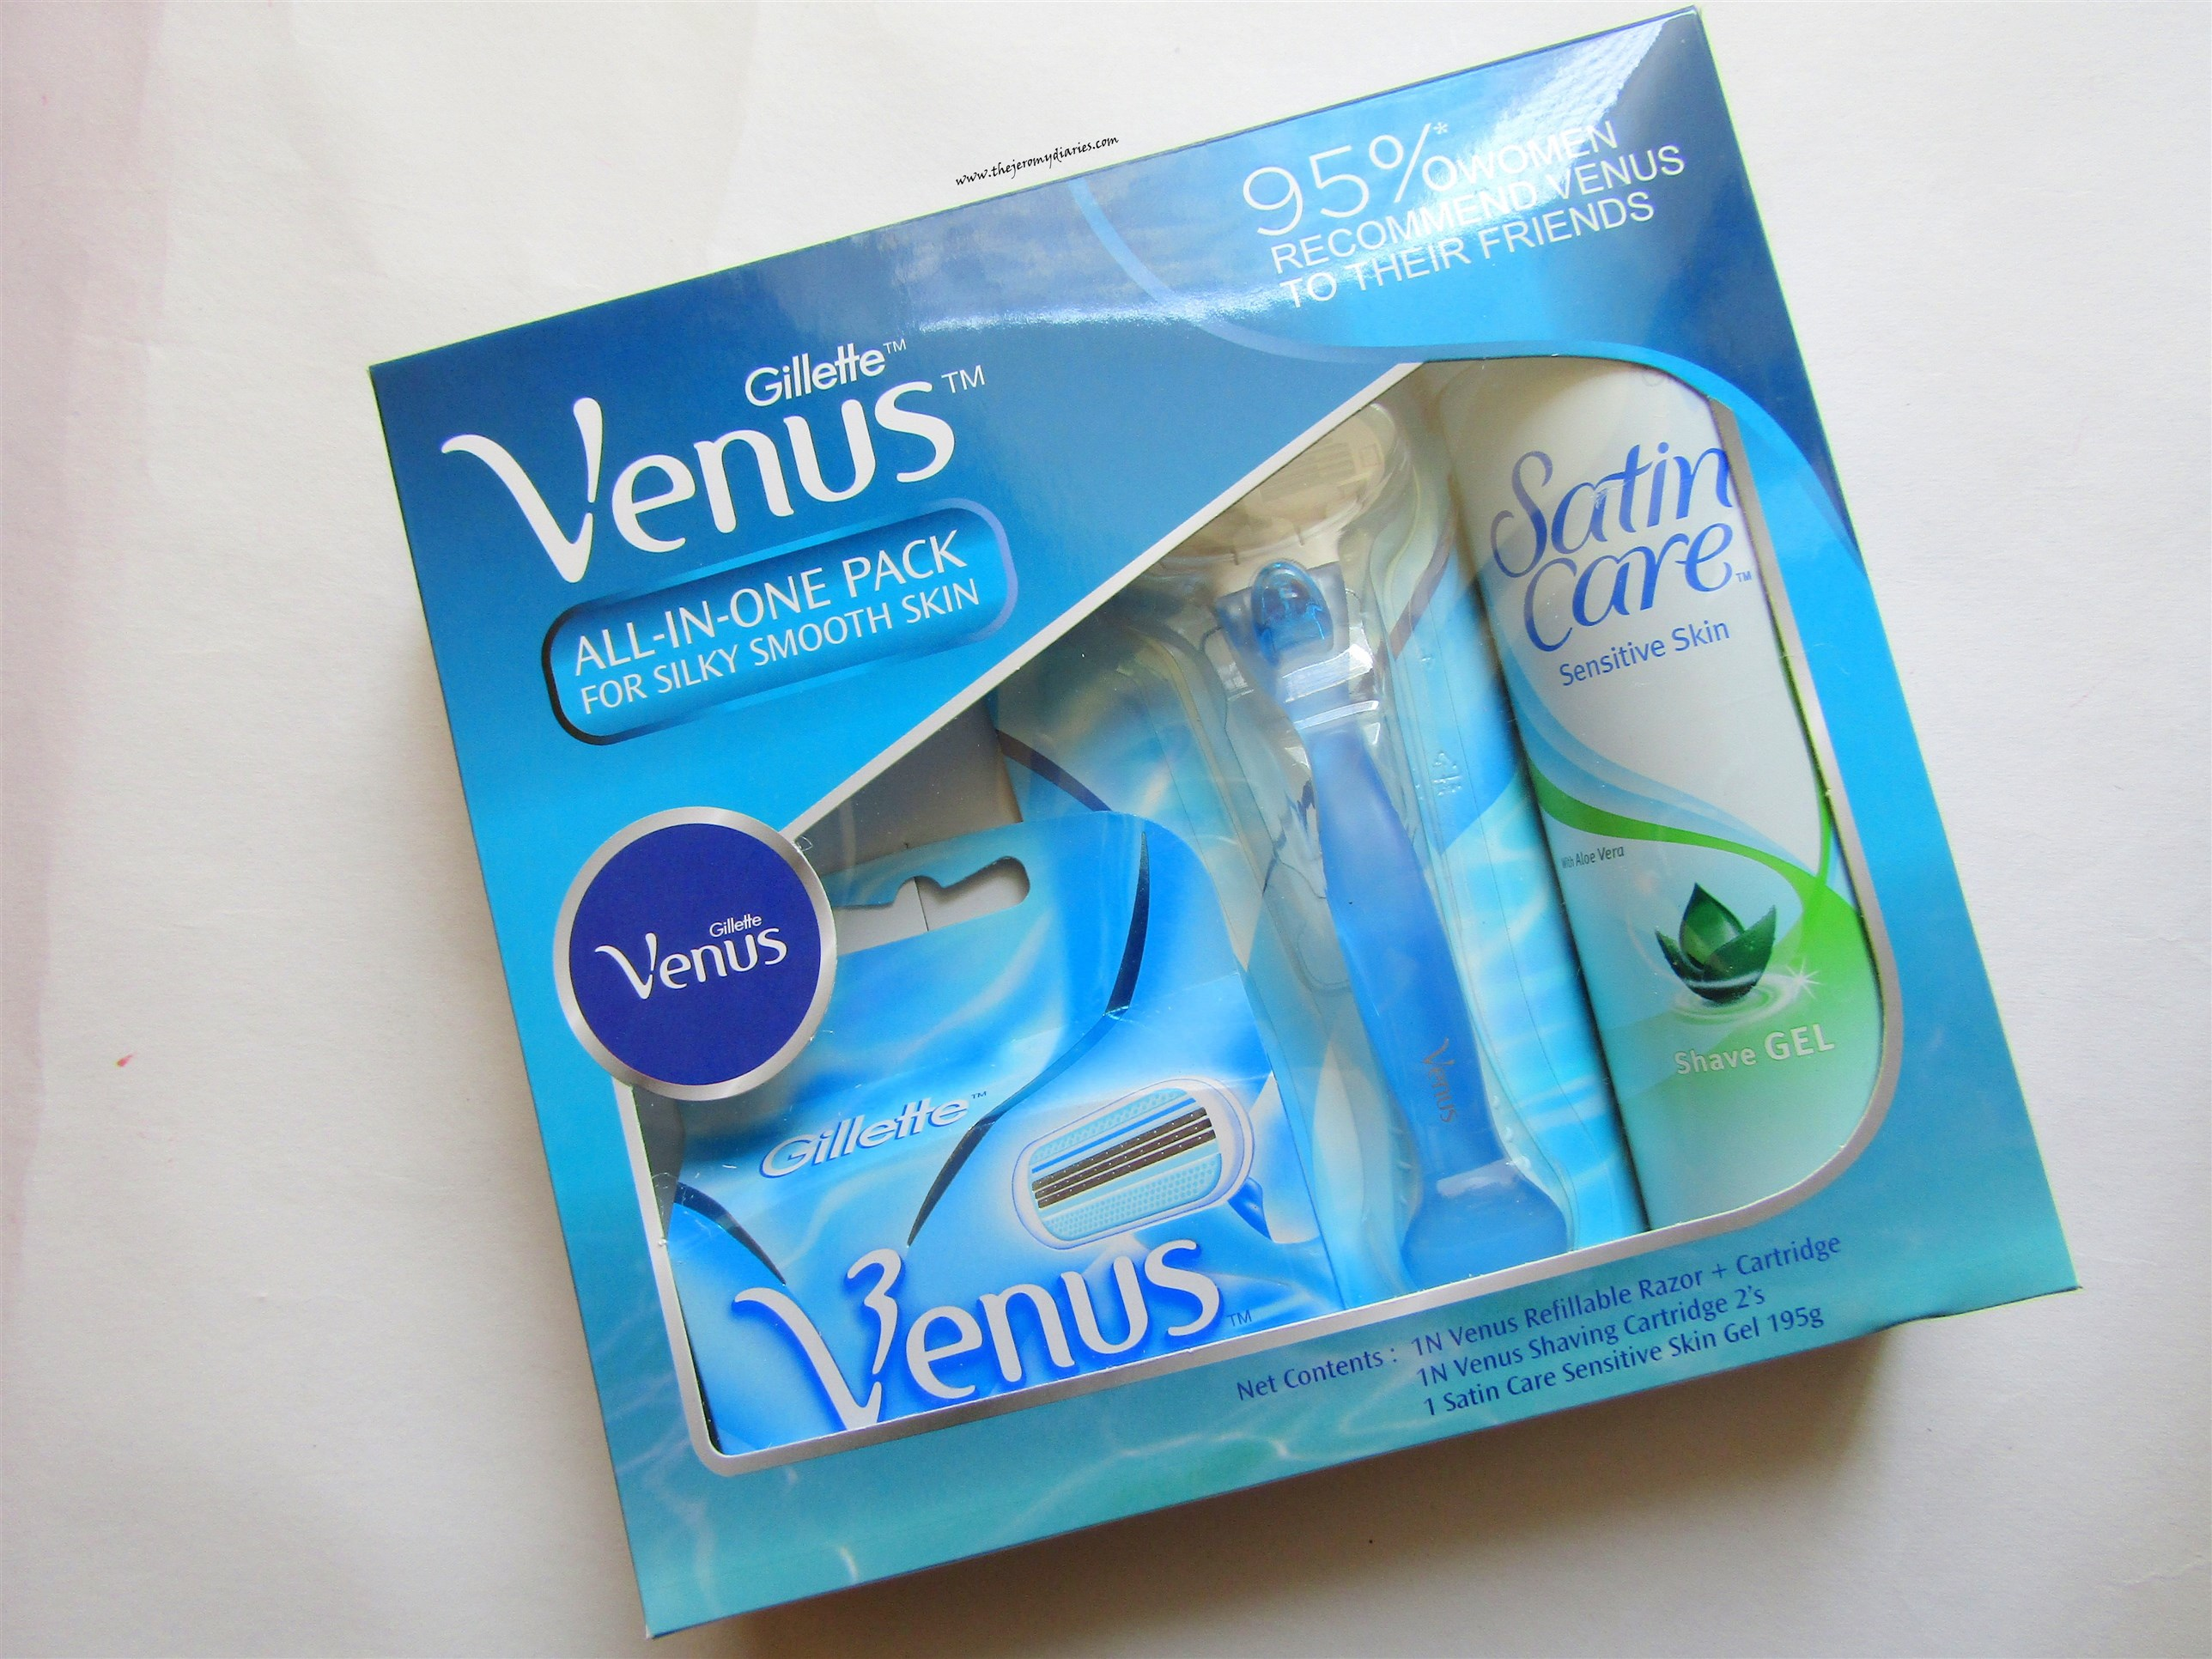 gillette venus shaving kit (2576 x 1932)